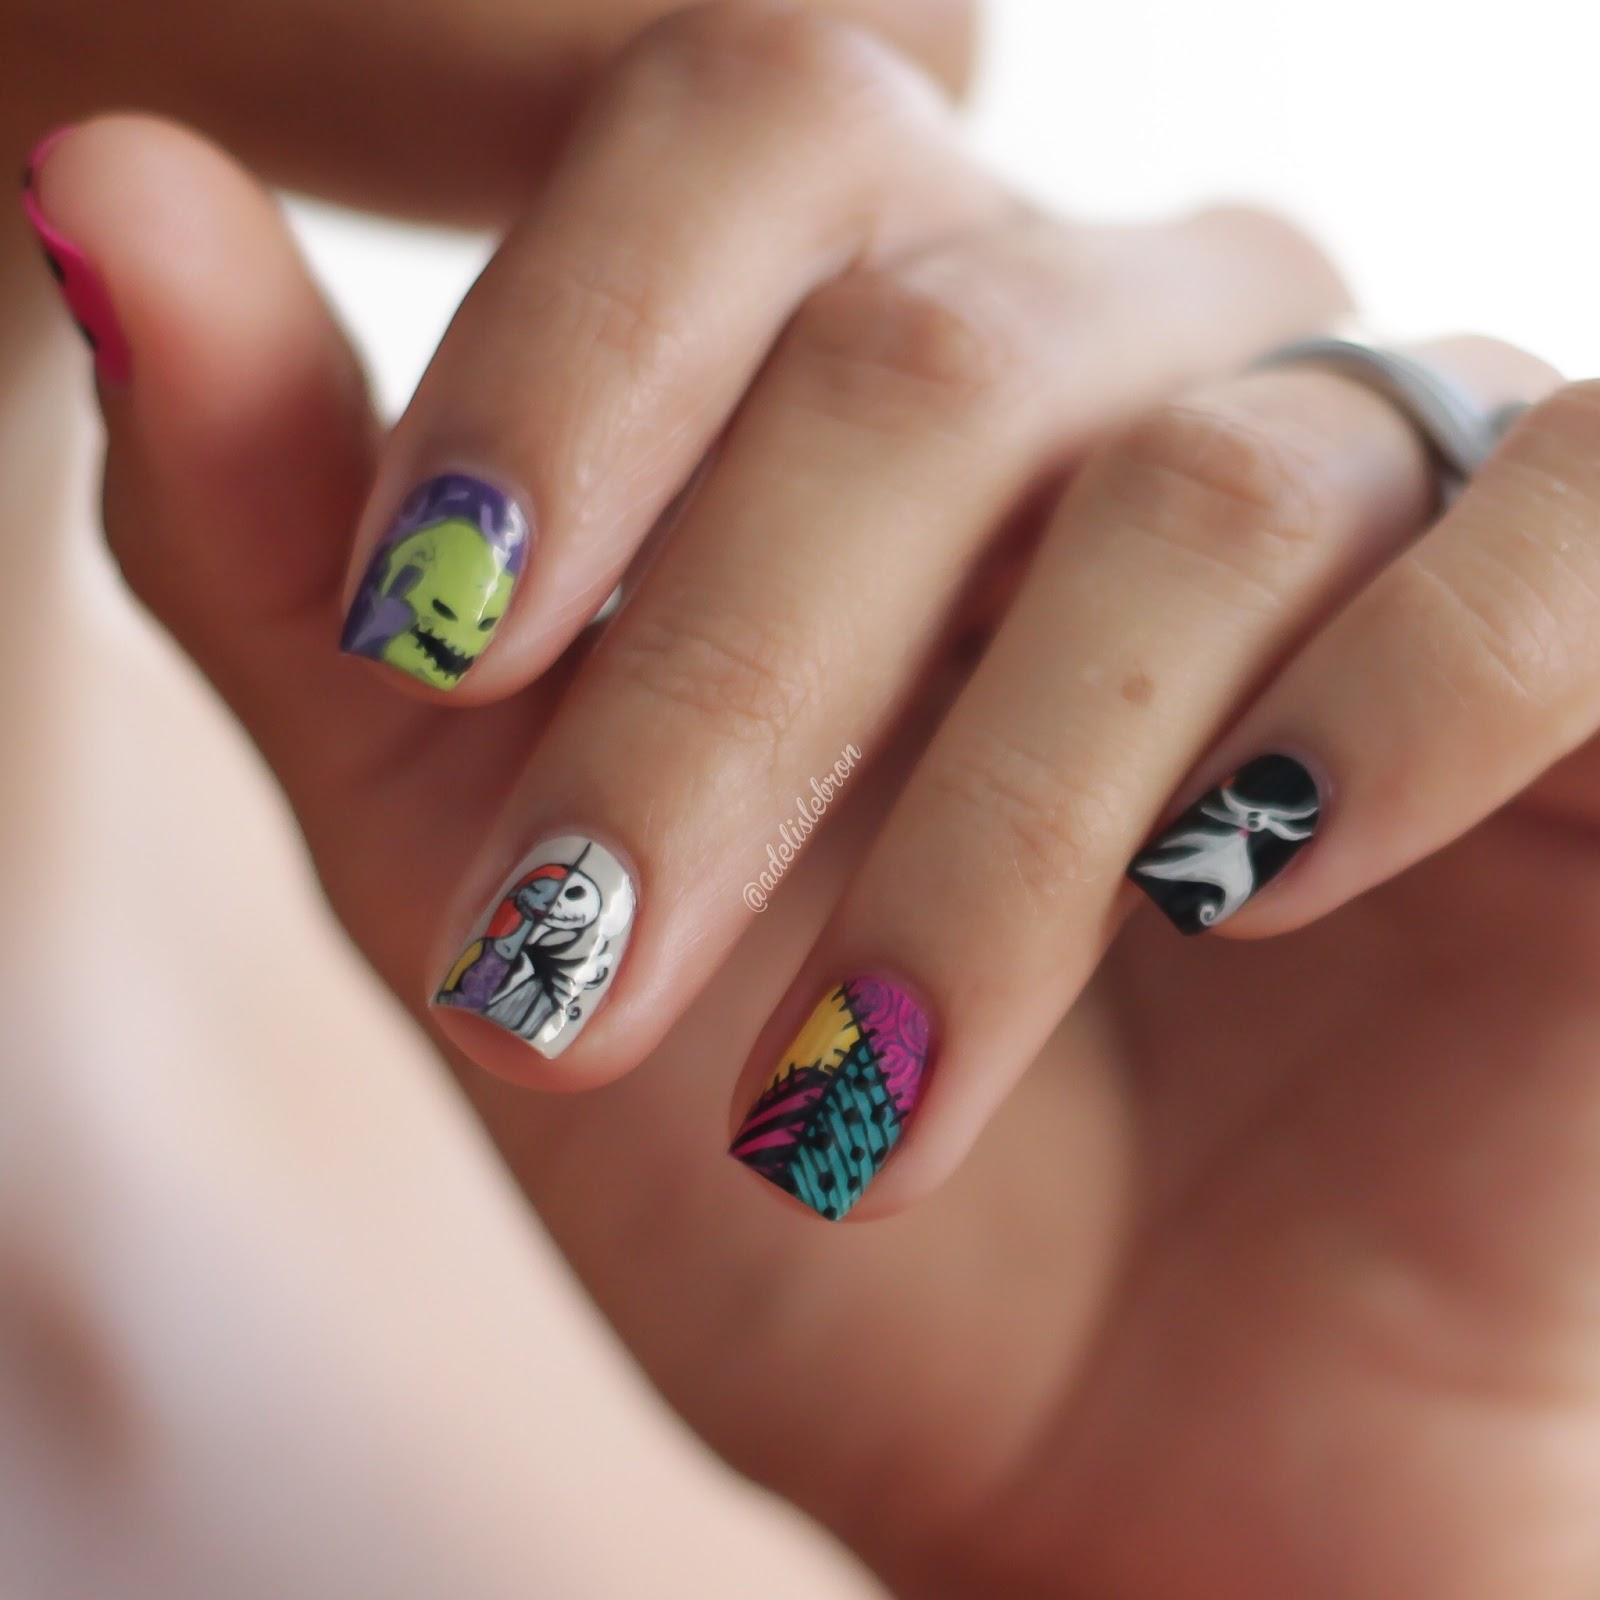 Adelis Lebron Nail Art The Nightmare Before Christmas Nail Art